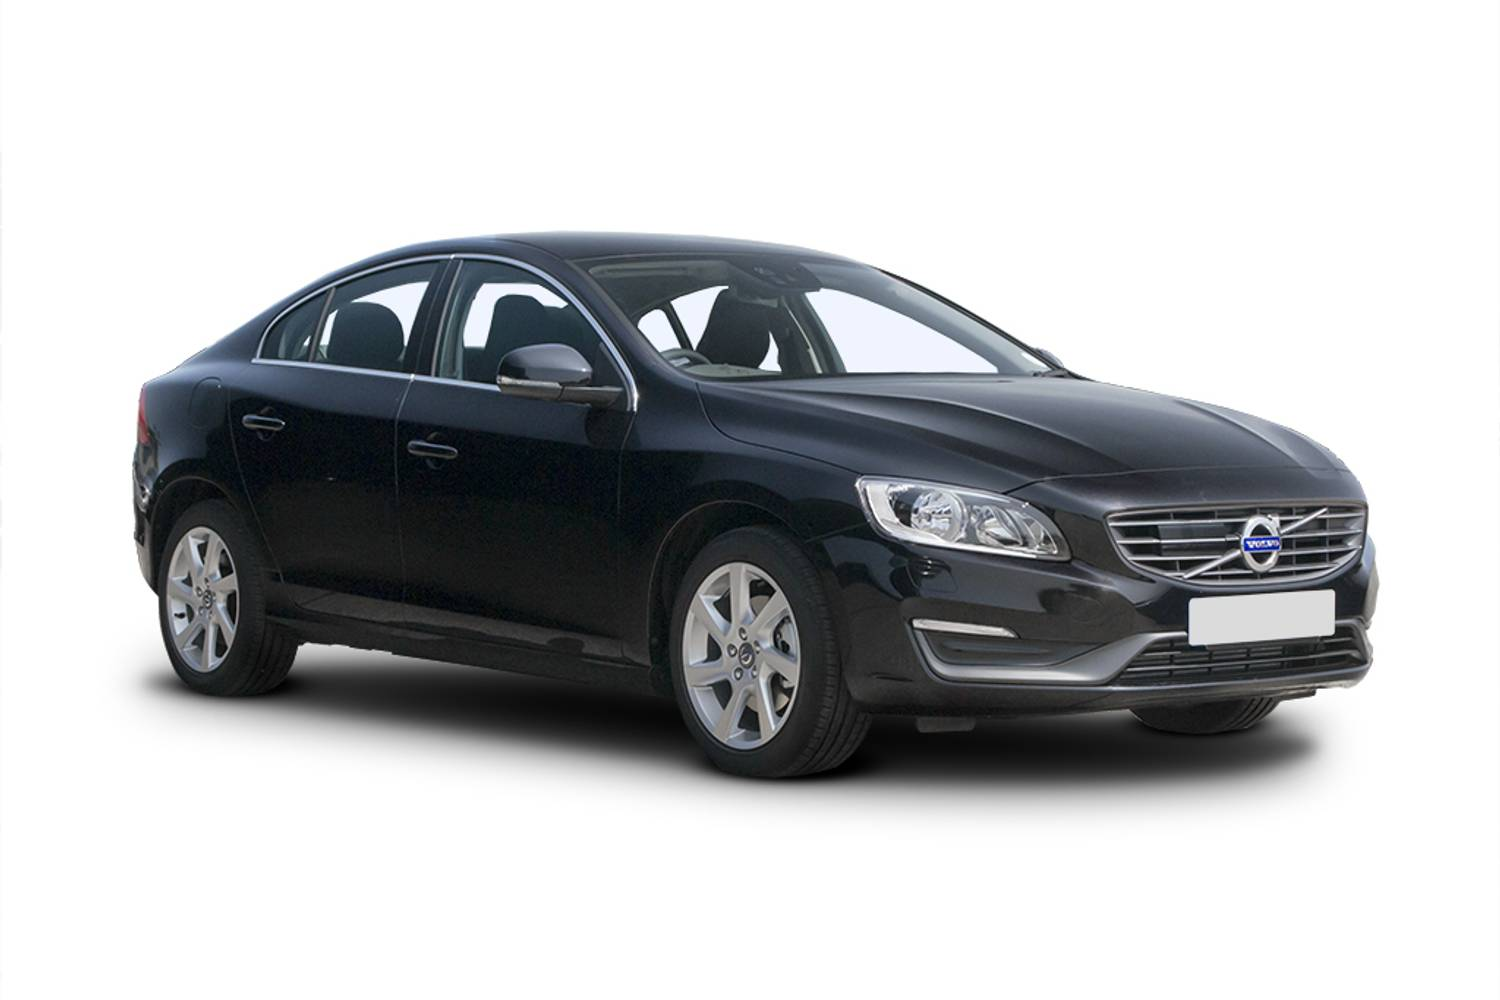 accessories business ps cars new saloon front edition three volvo door quarter diesel